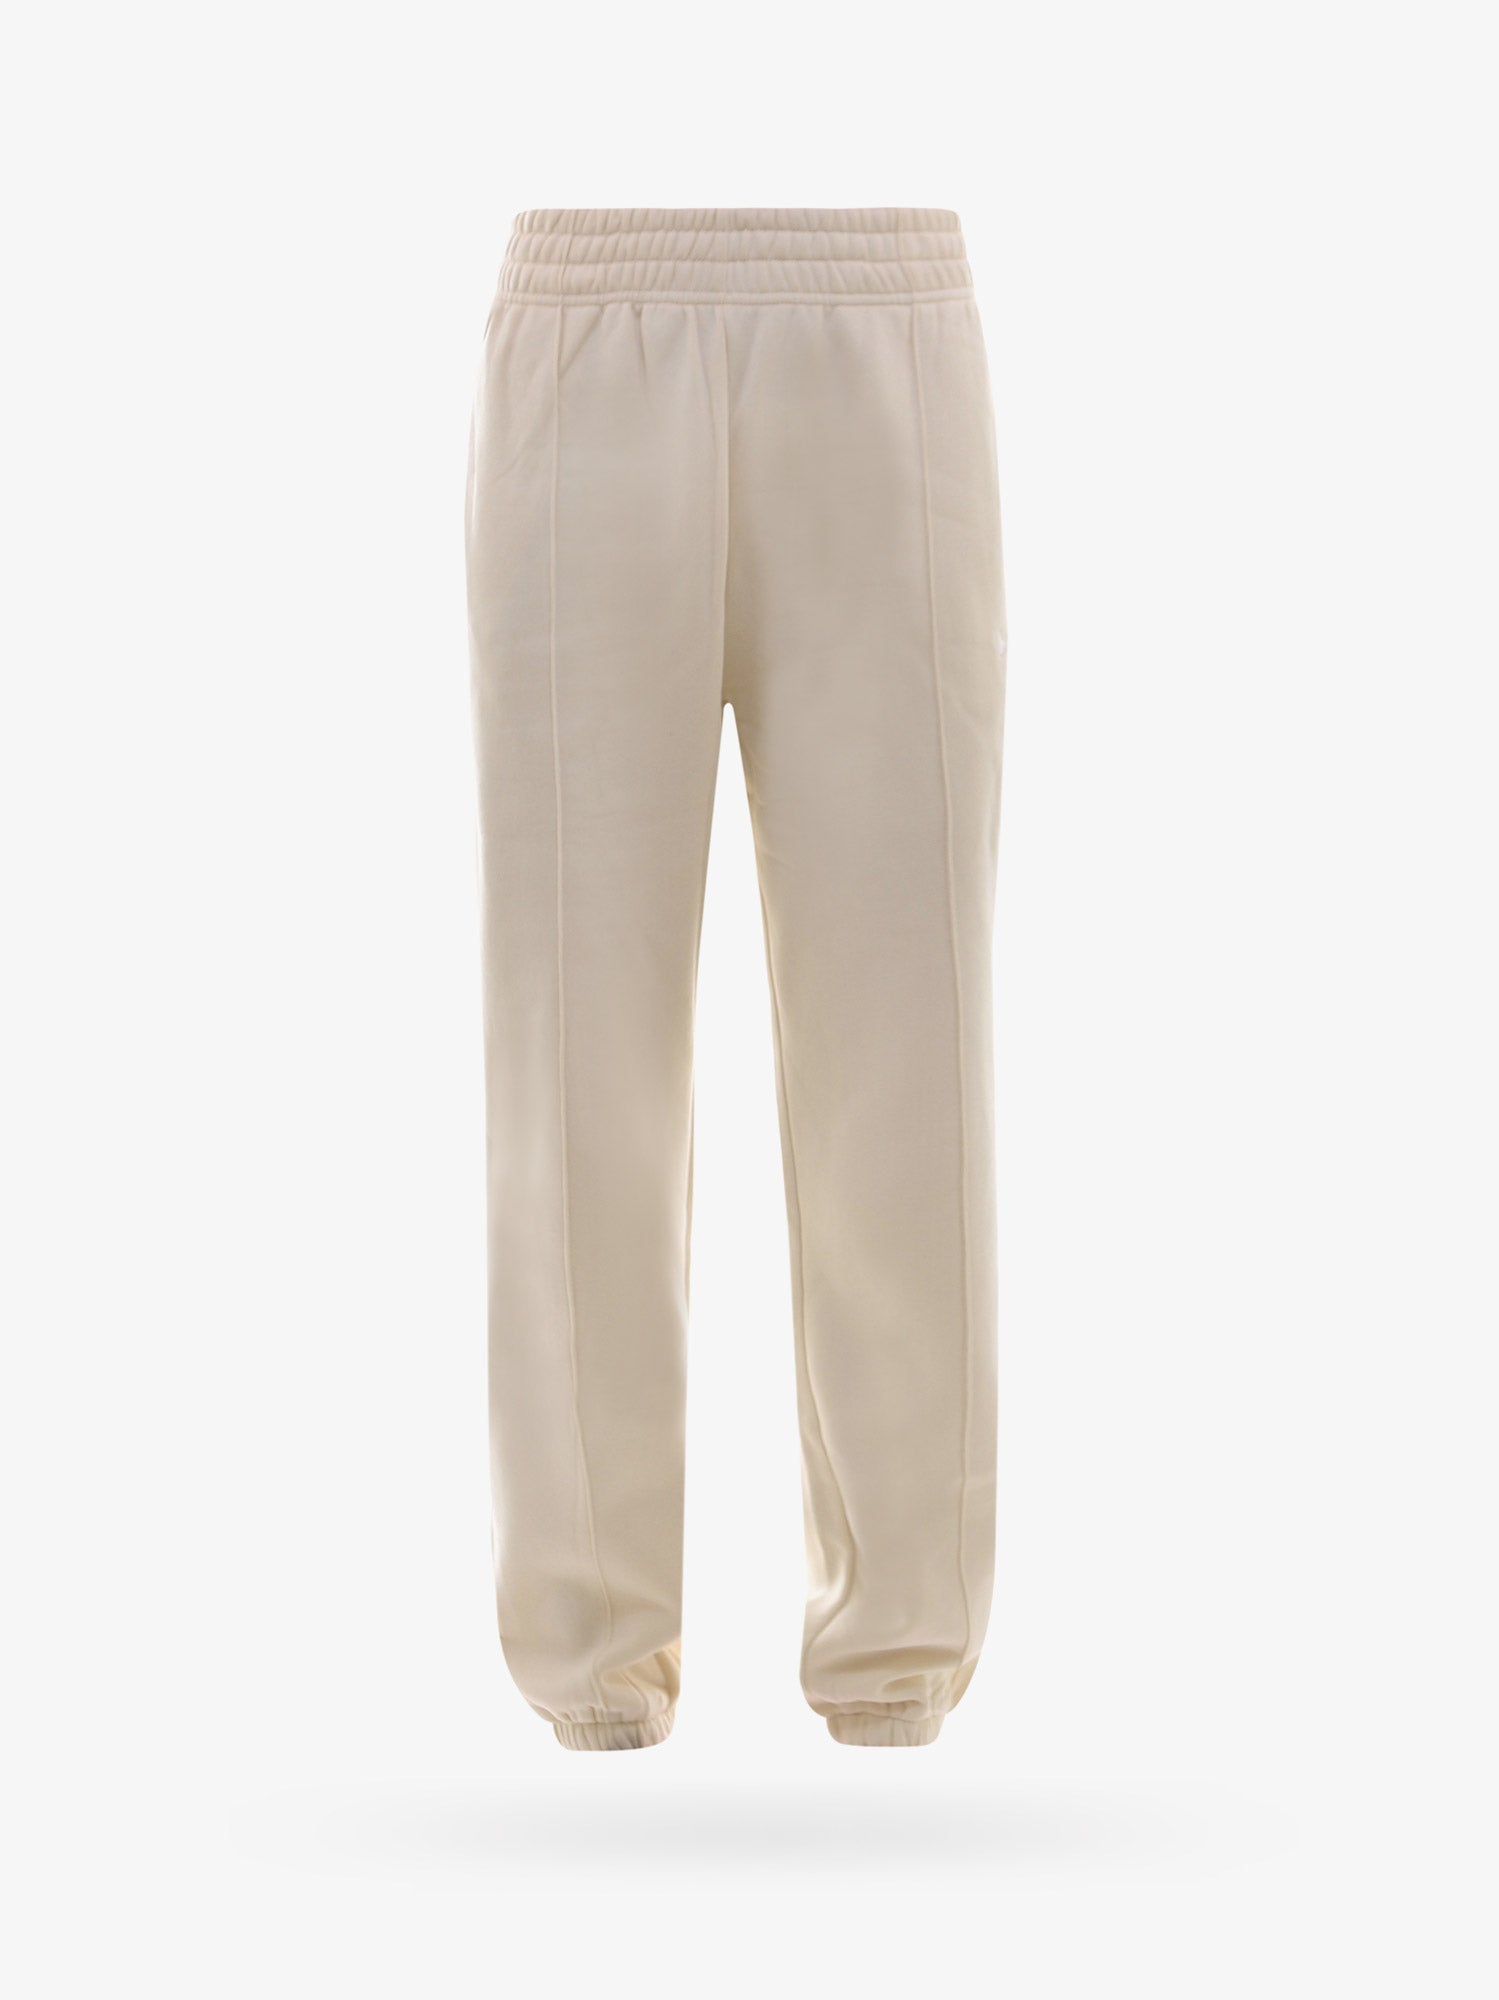 Nike Cottons TROUSER